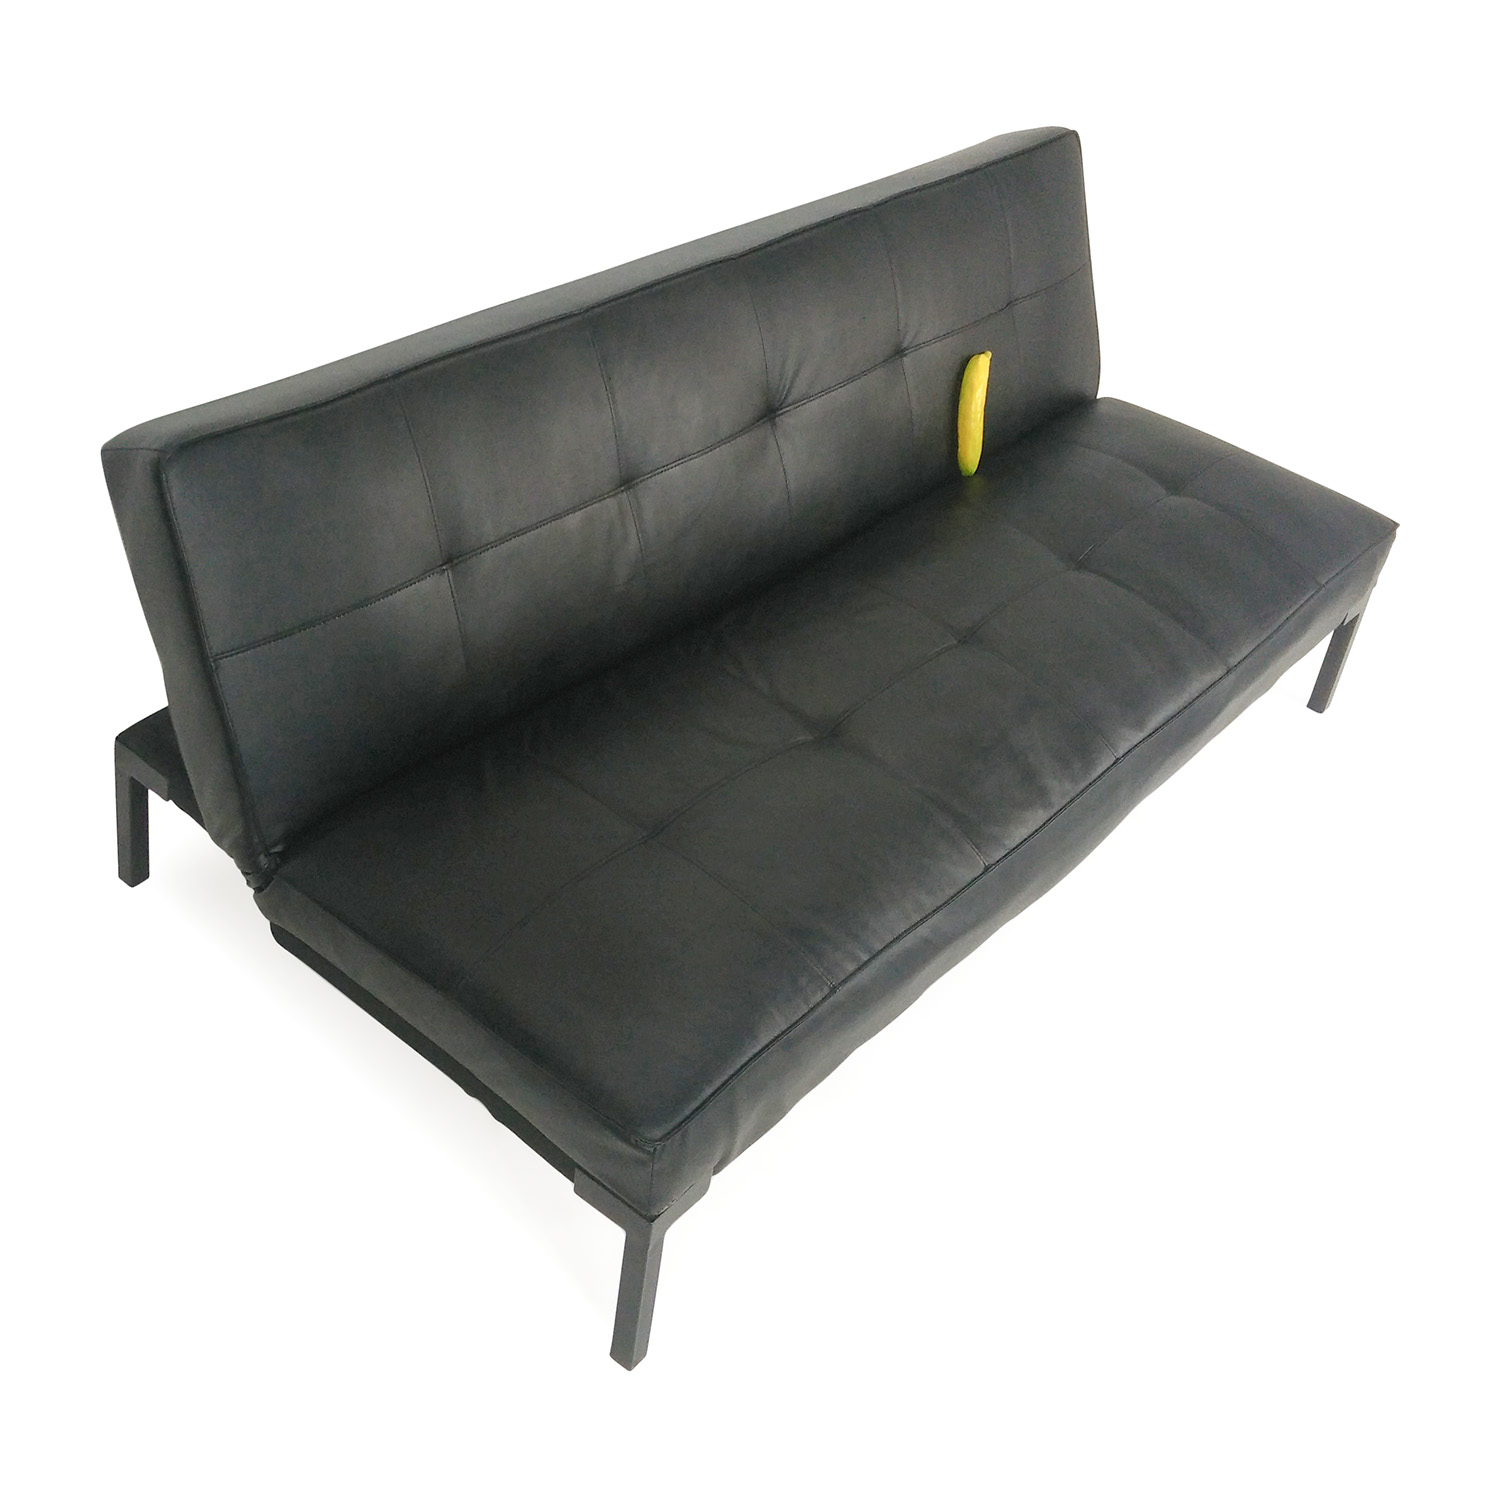 Captivating ... French Make French Make Leather Adjustable Futon Coupon ...